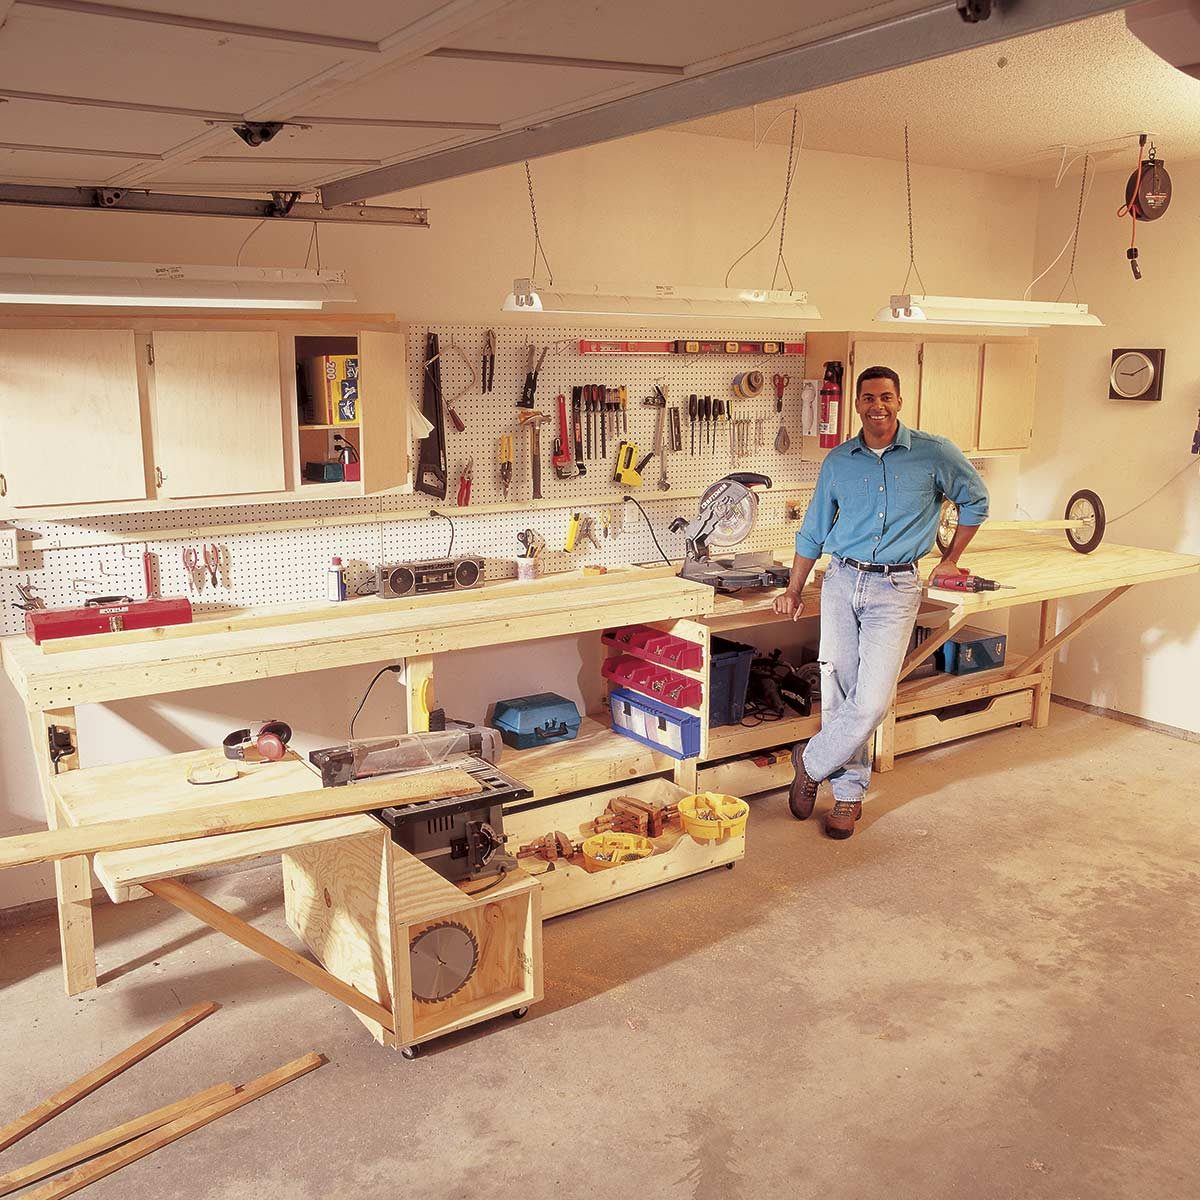 The 10 Best Garage Workbench Builds: 12 Super-Simple Workbenches You Can Build